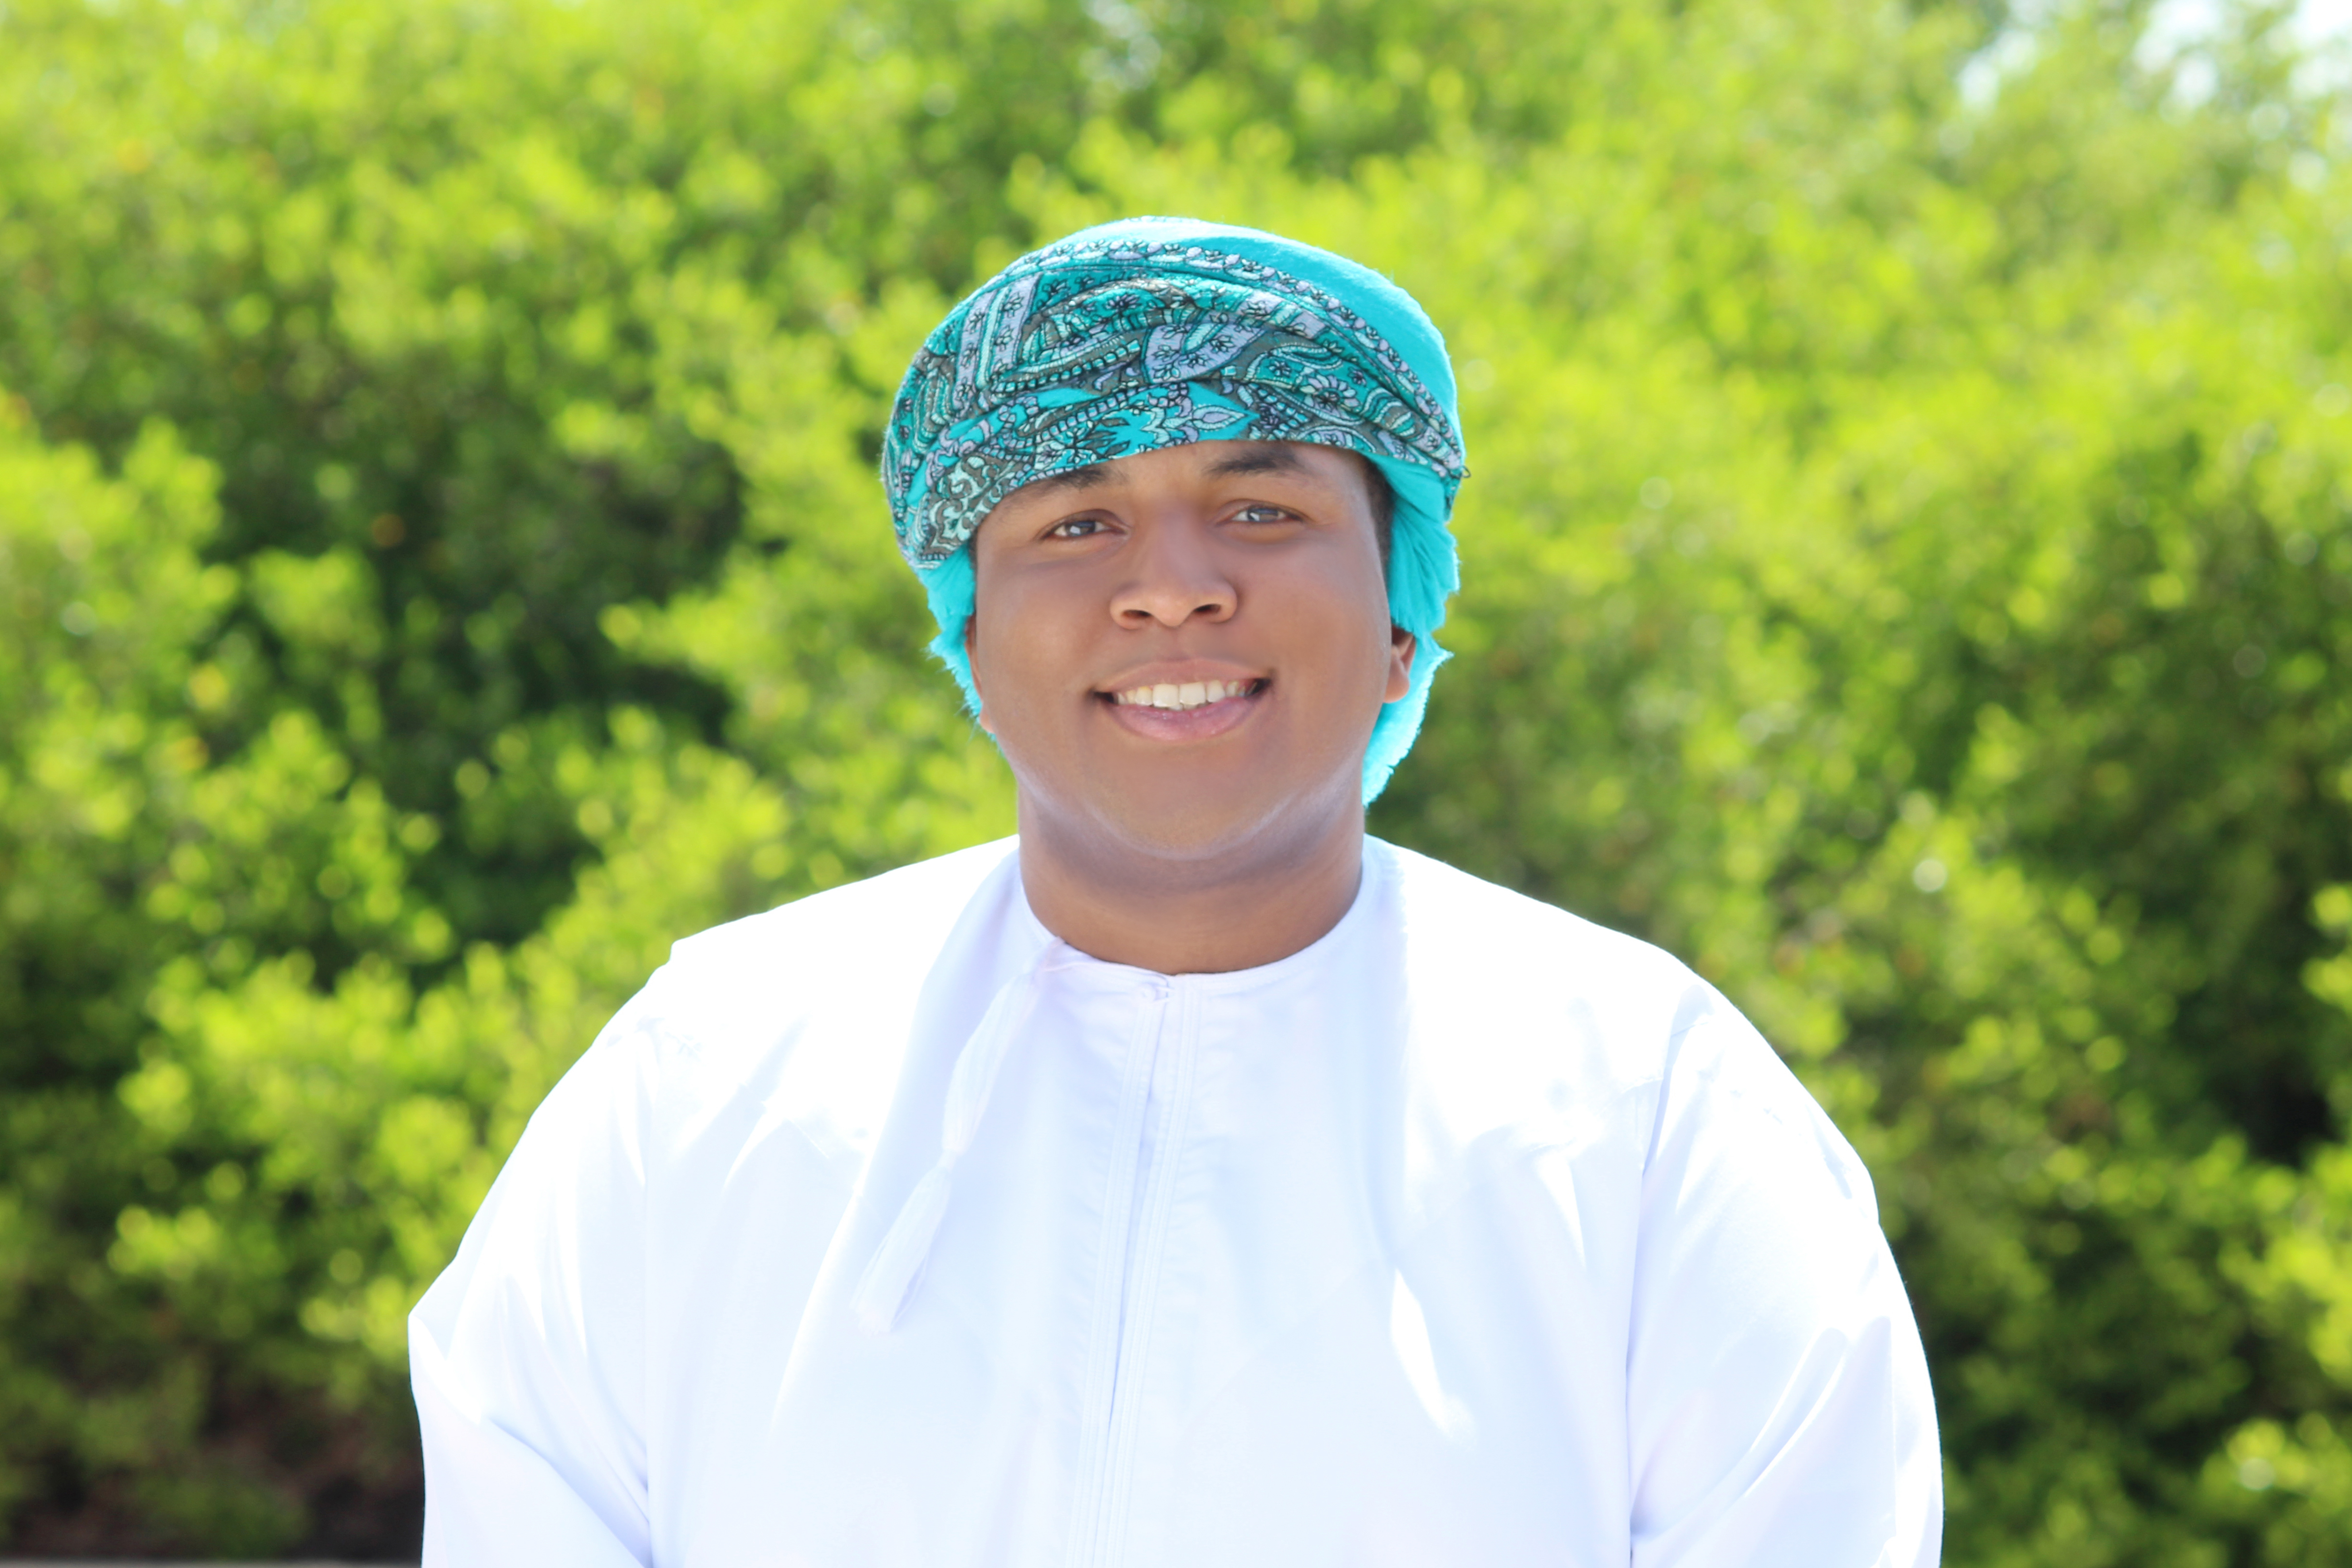 Omani Resort Manager tragically passes away